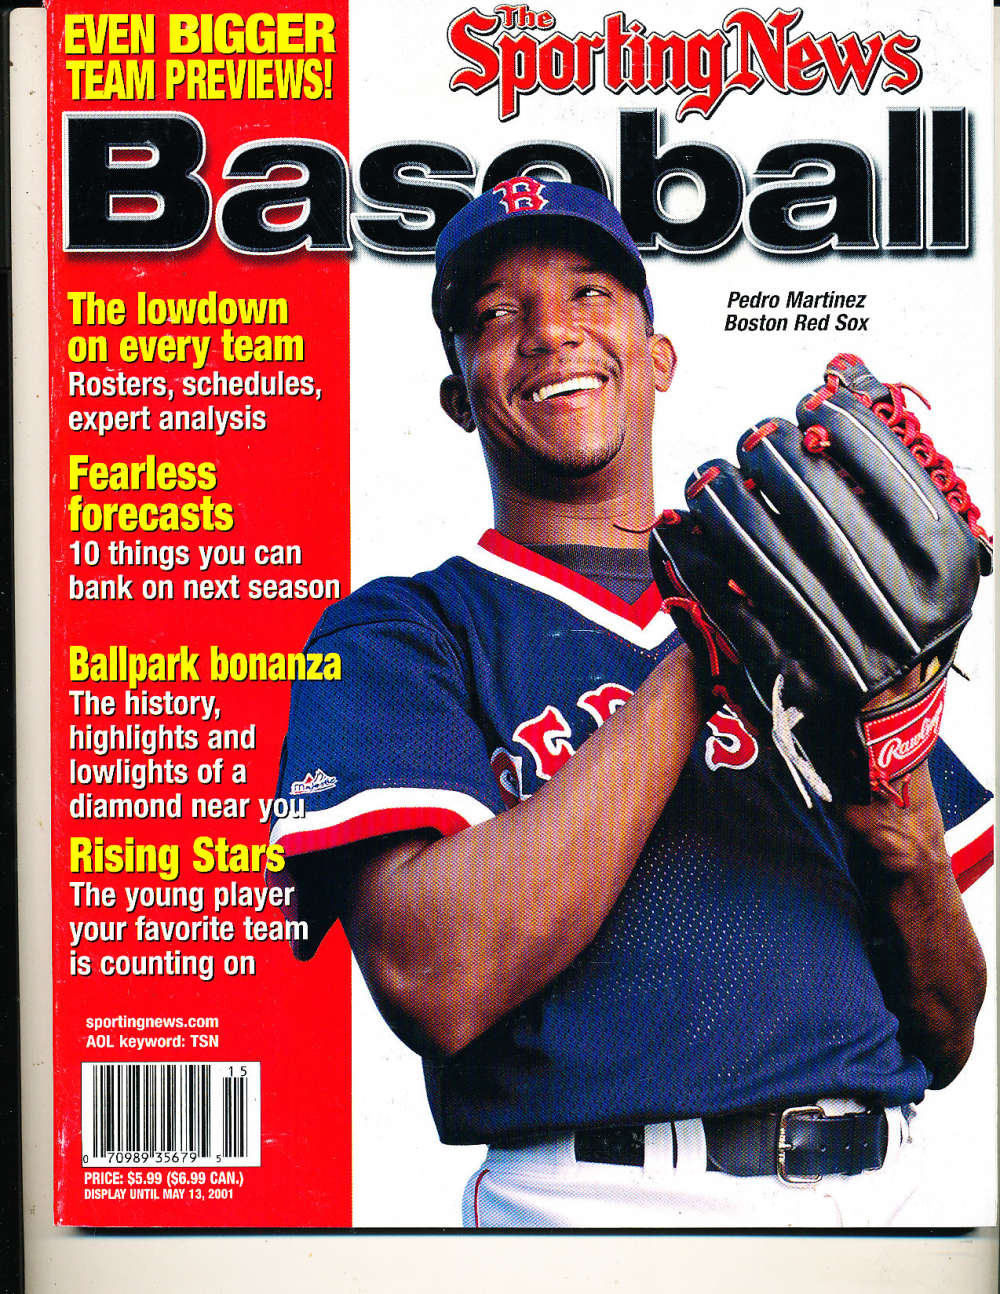 2001 The sporting News Baseball Pedro Martinez Red Sox nm bx1